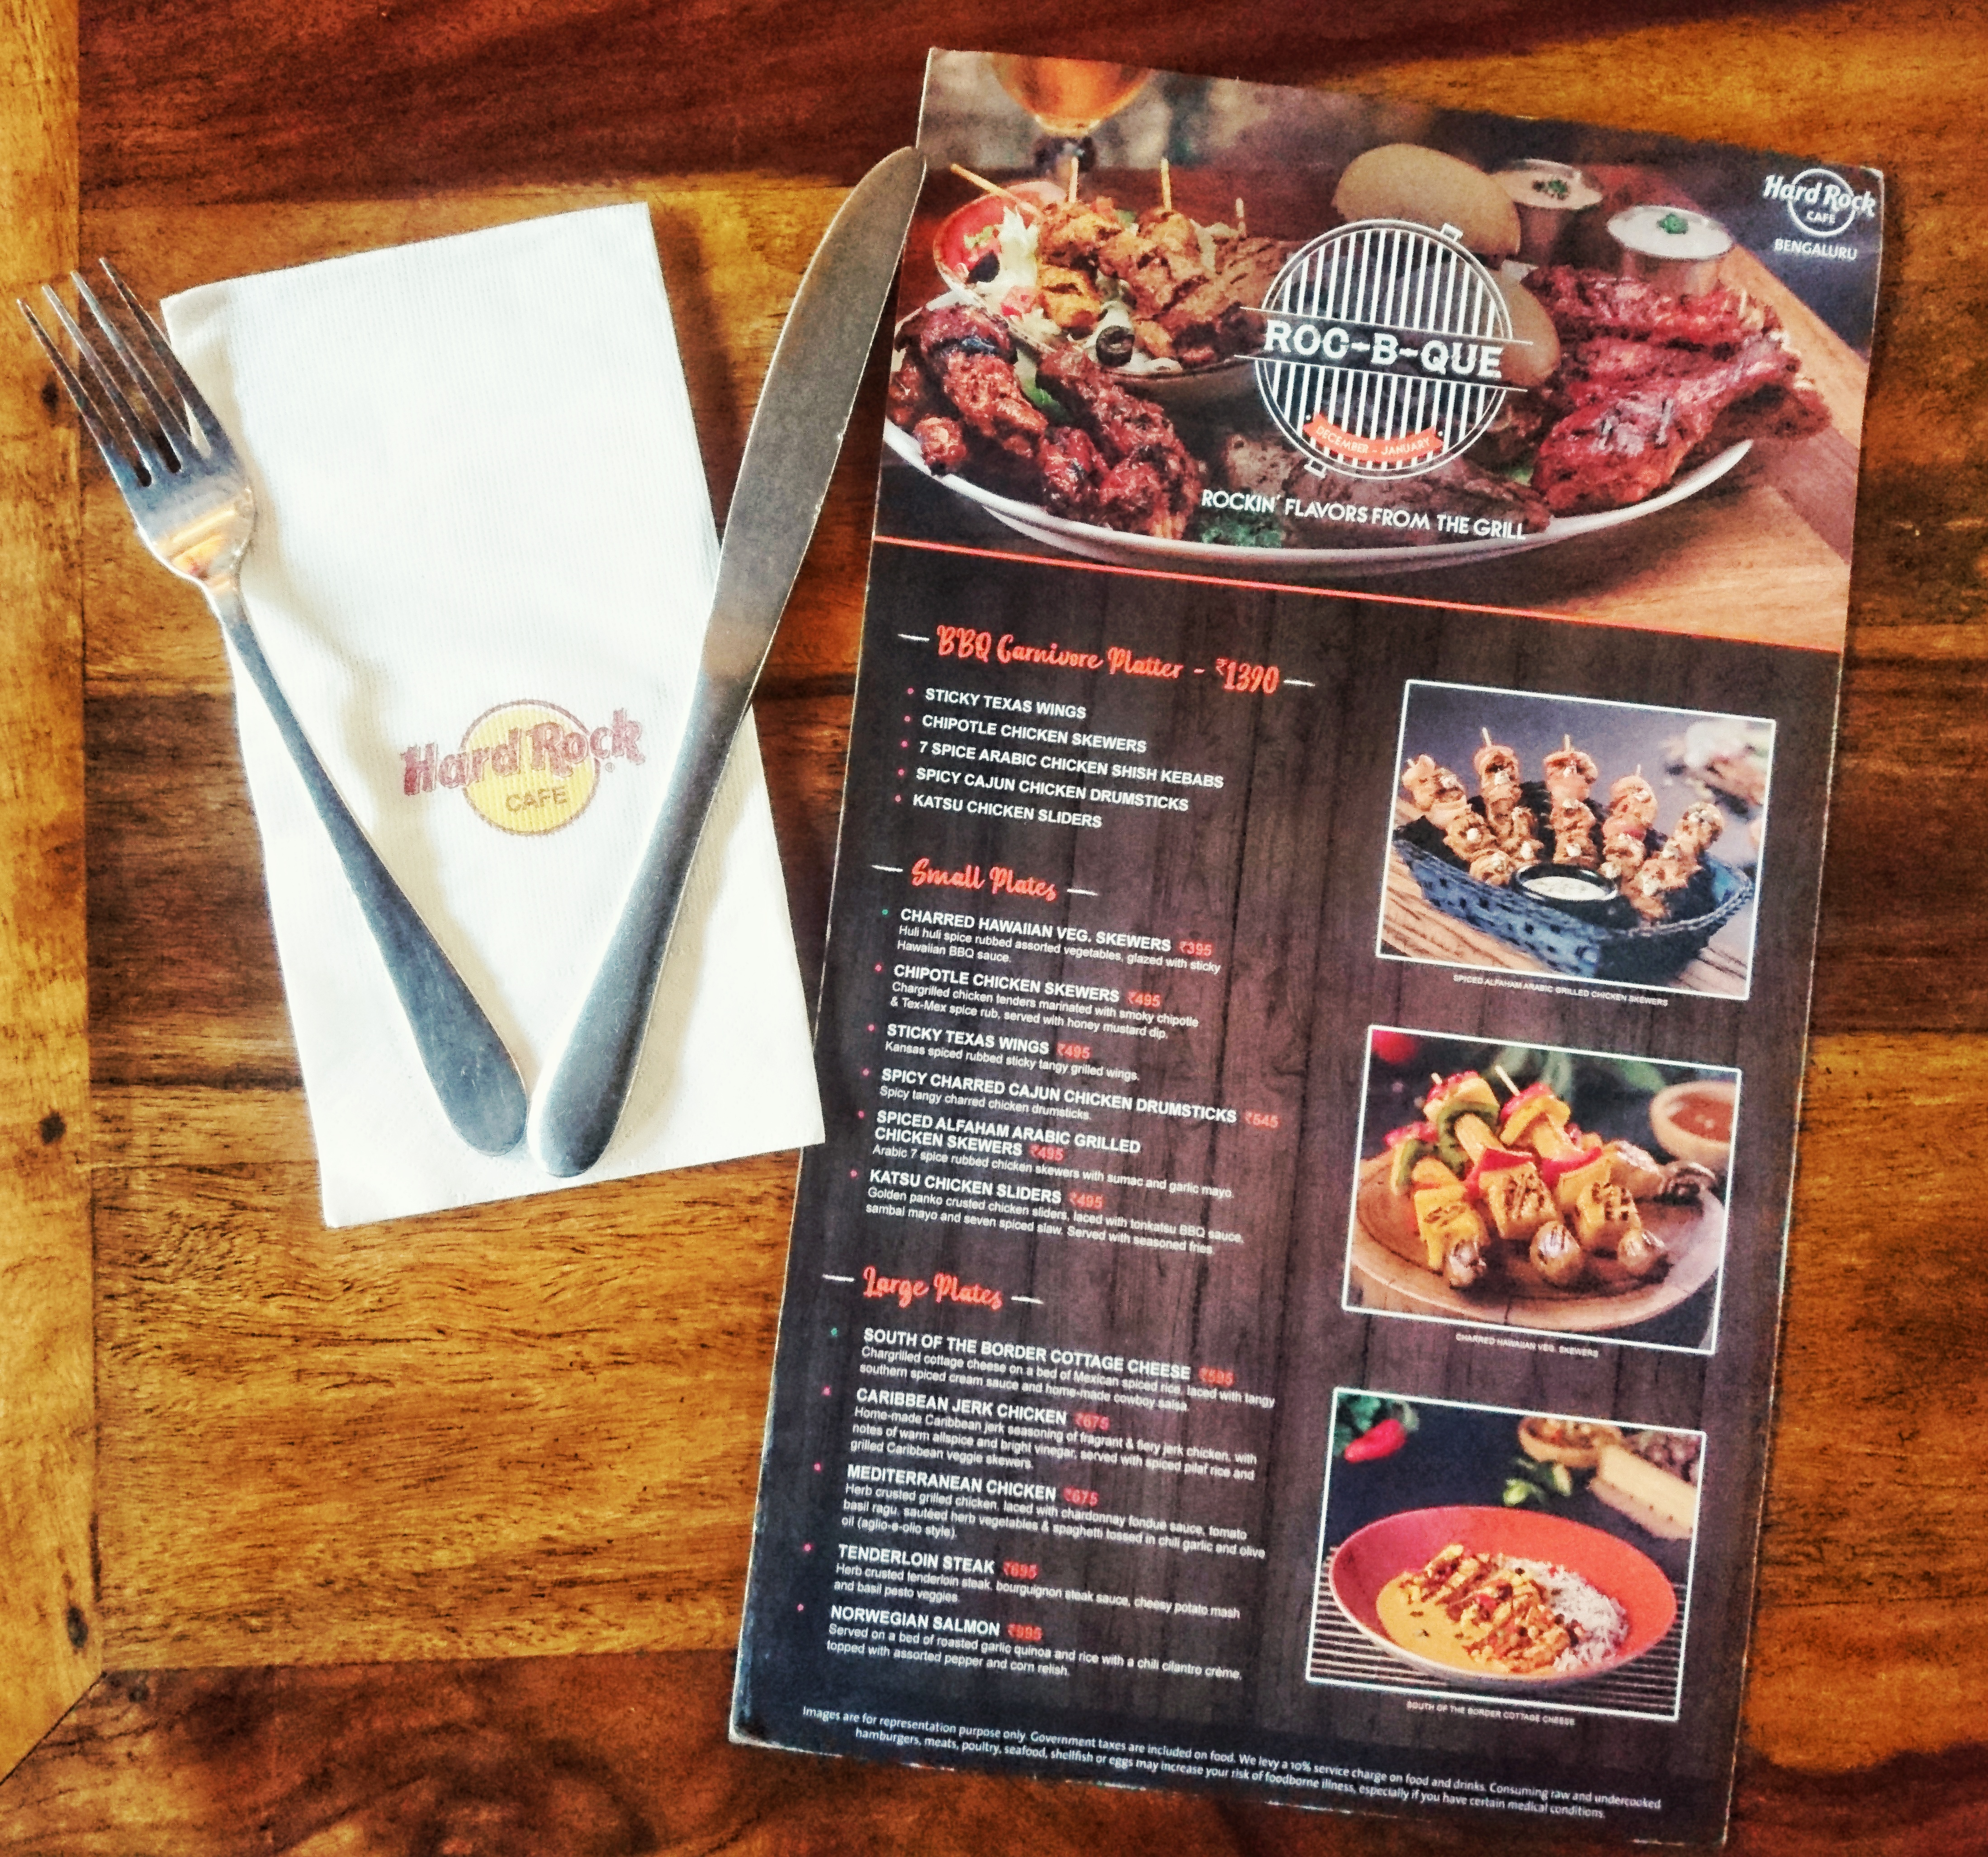 A carnival of fiery BBQ, grills and unique LIIT's @Hard rock café